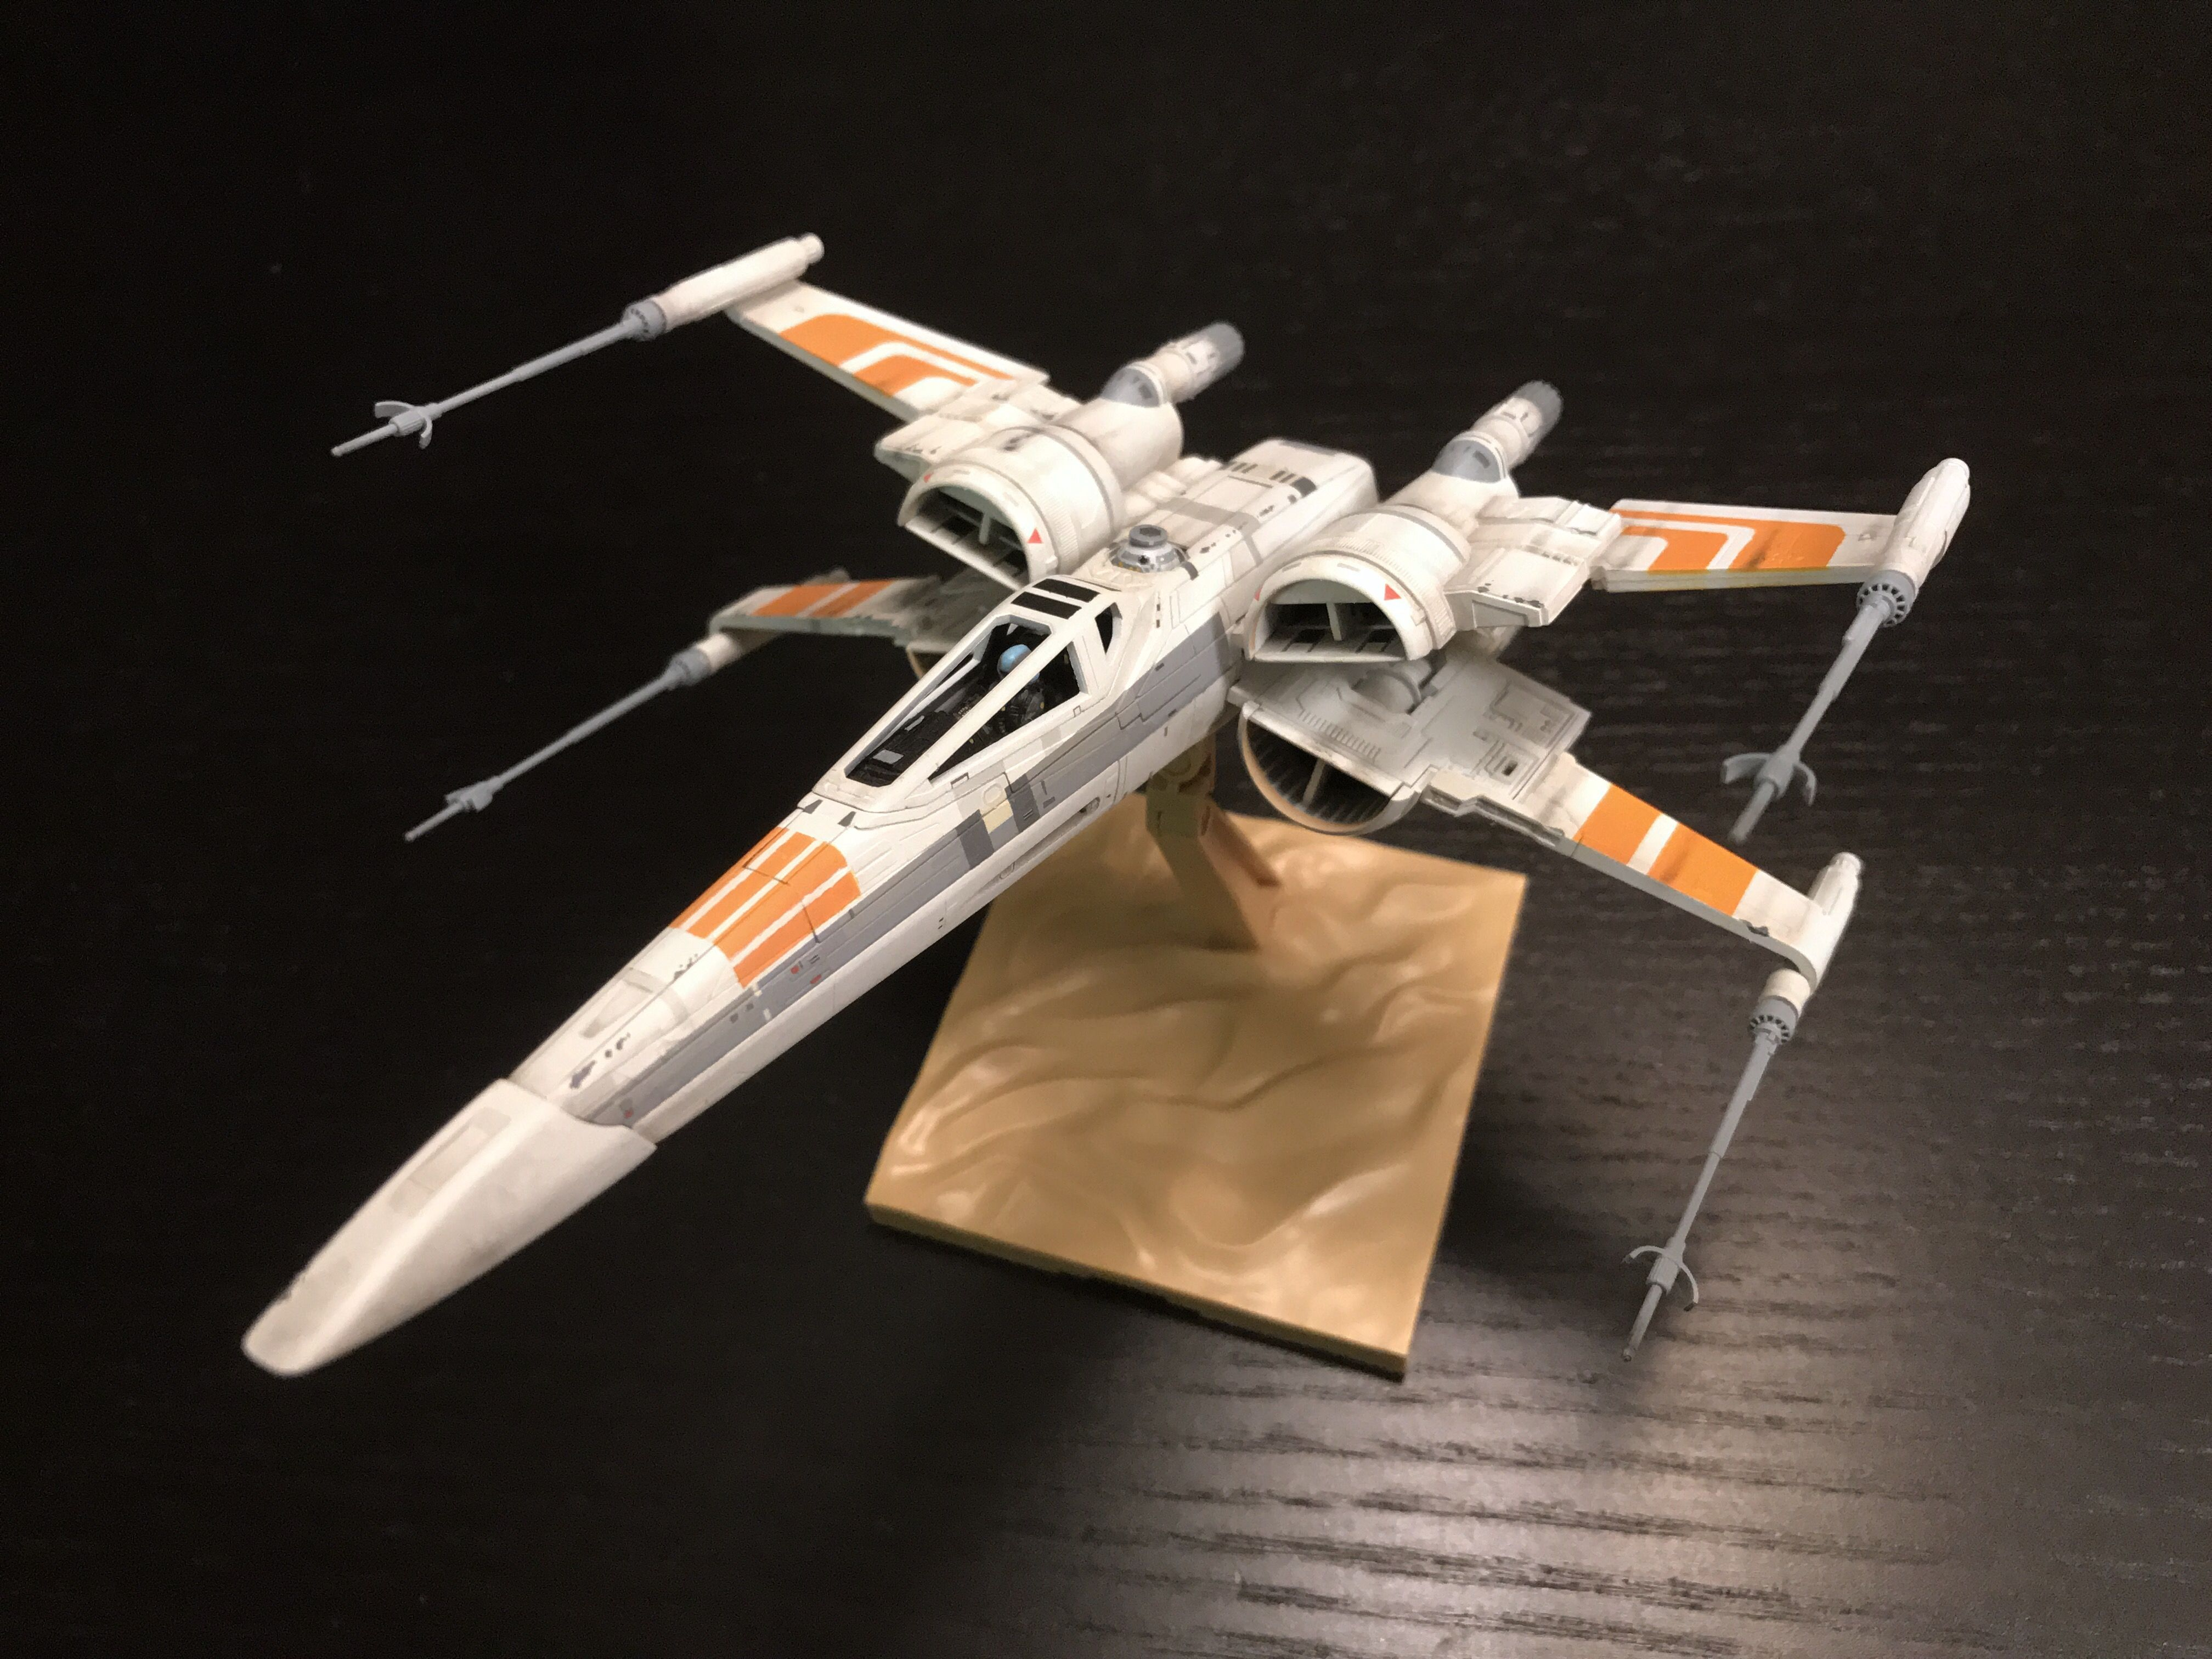 Bandai Star Wars Ralph McQuarrie X-Wing concept starfighter